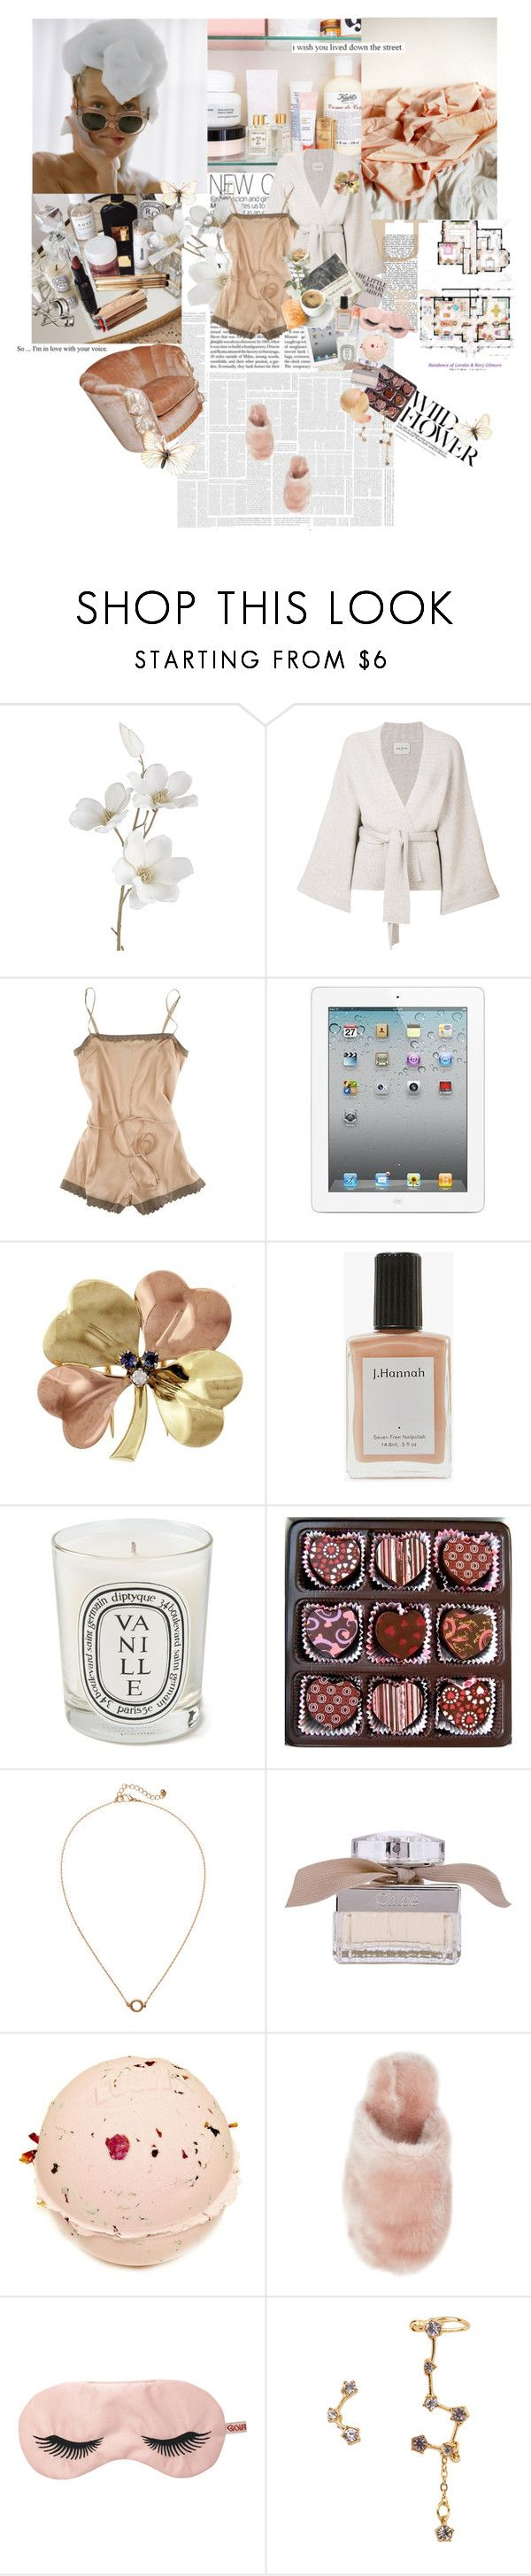 """""""peace of mind"""" by la-rosy ❤ liked on Polyvore featuring Pier 1 Imports, Le Kasha, STELLA McCARTNEY, Tiffany & Co., J. Hannah, Diptyque, Mother, Monki, Chloé and J.Crew"""